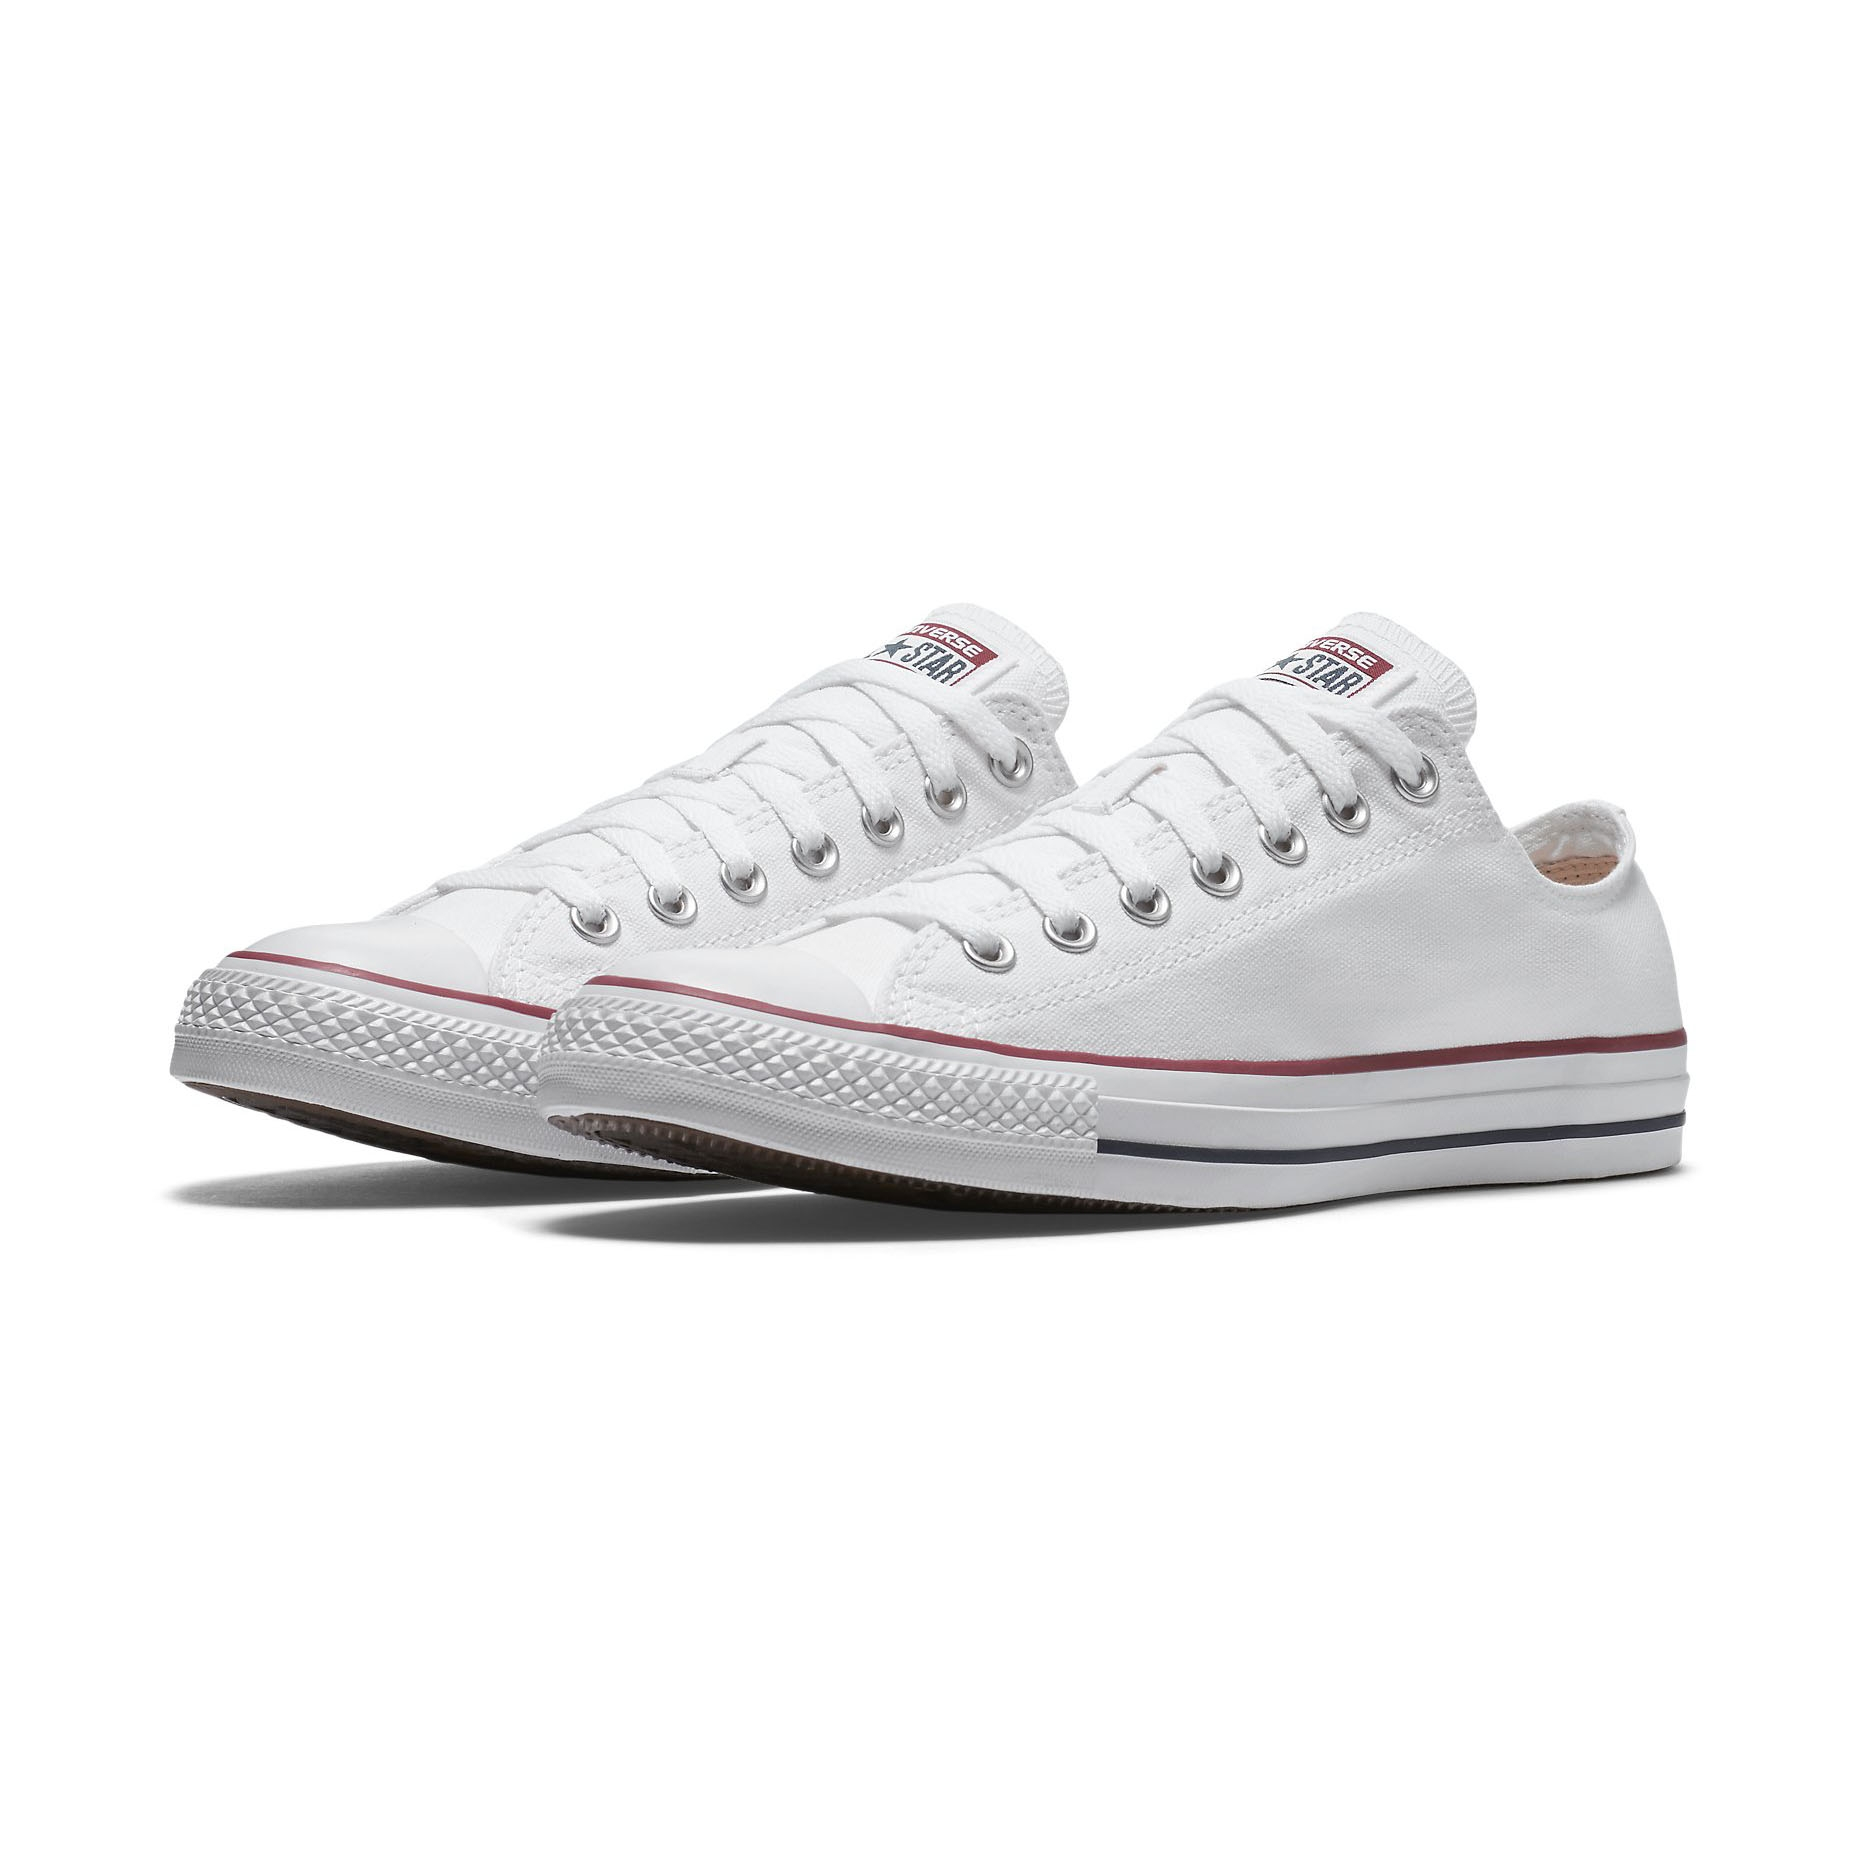 44863e4f4f74b0 Converse Chuck Taylor Ox All Star Men s Ladies Sneaker Shoes Optic ...